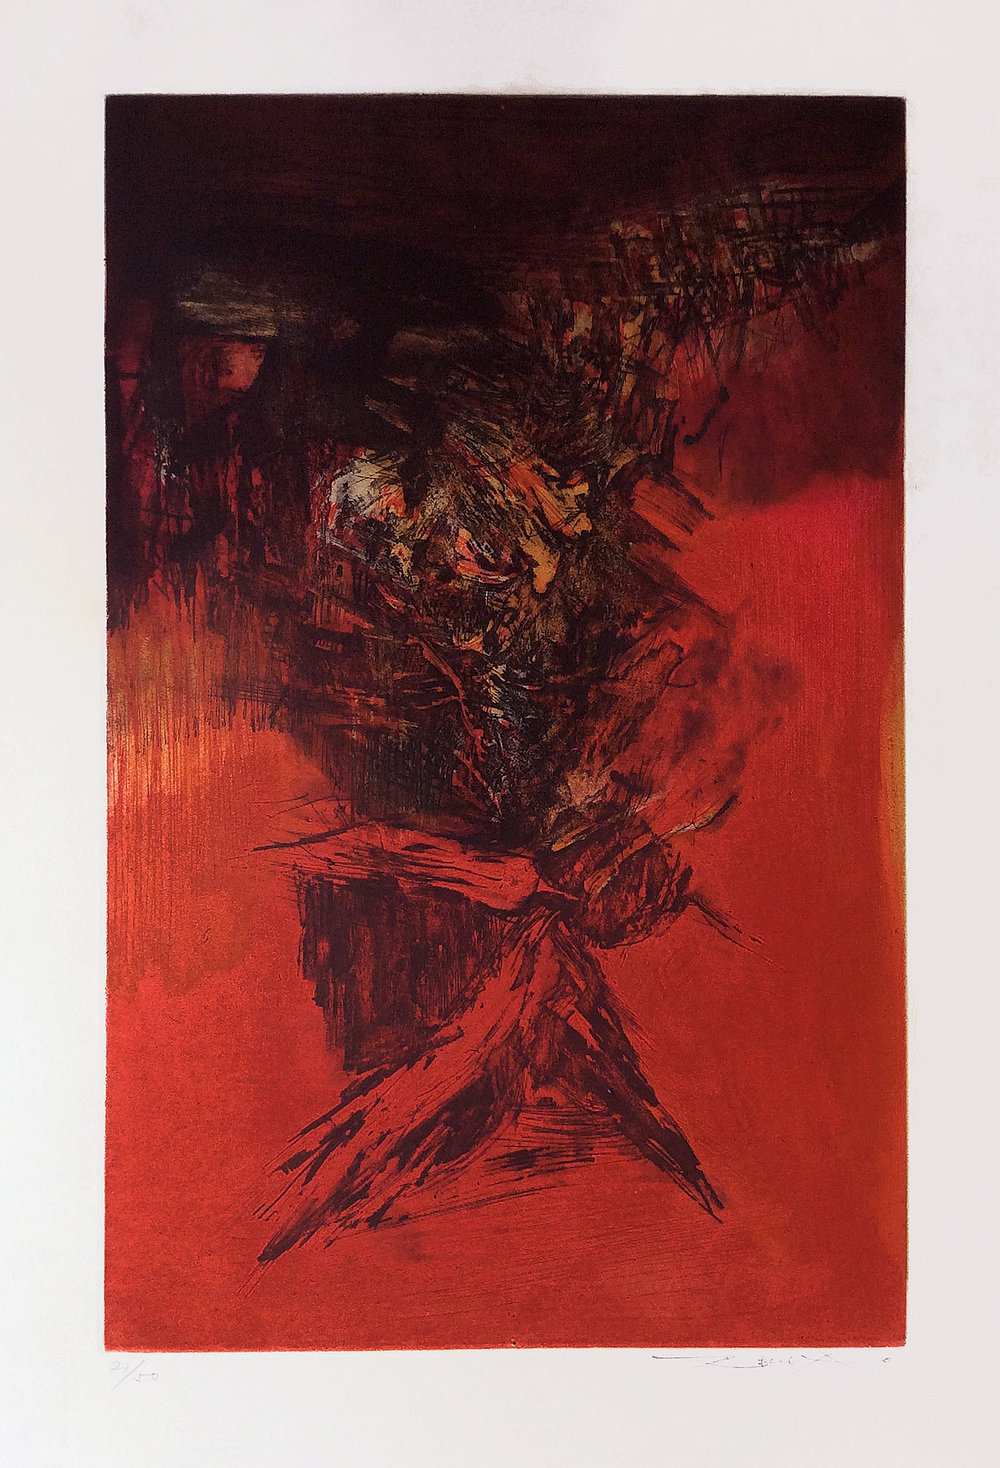 Ohne Titel, 1972, 10 x 16 in., Etching and aquatint (Ed. 21 of 50)